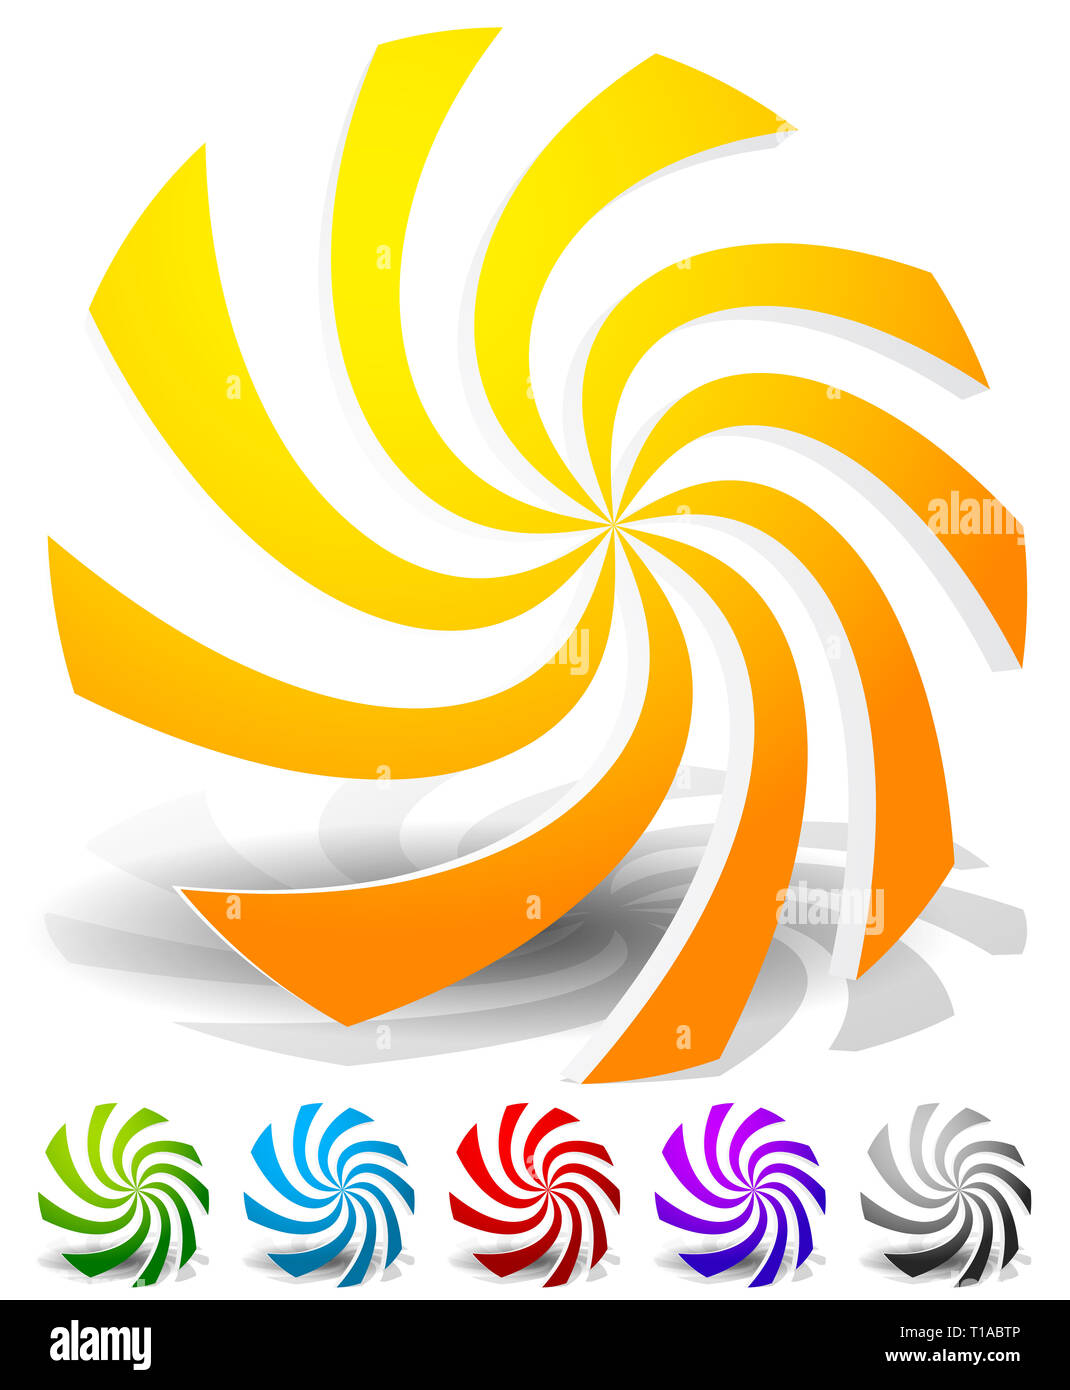 Set of colorful abstract elements. Whirling, swirling, rotating shapes. Set of 6 colors, yellow-orange, blue, red, purple and gray. - Stock Image